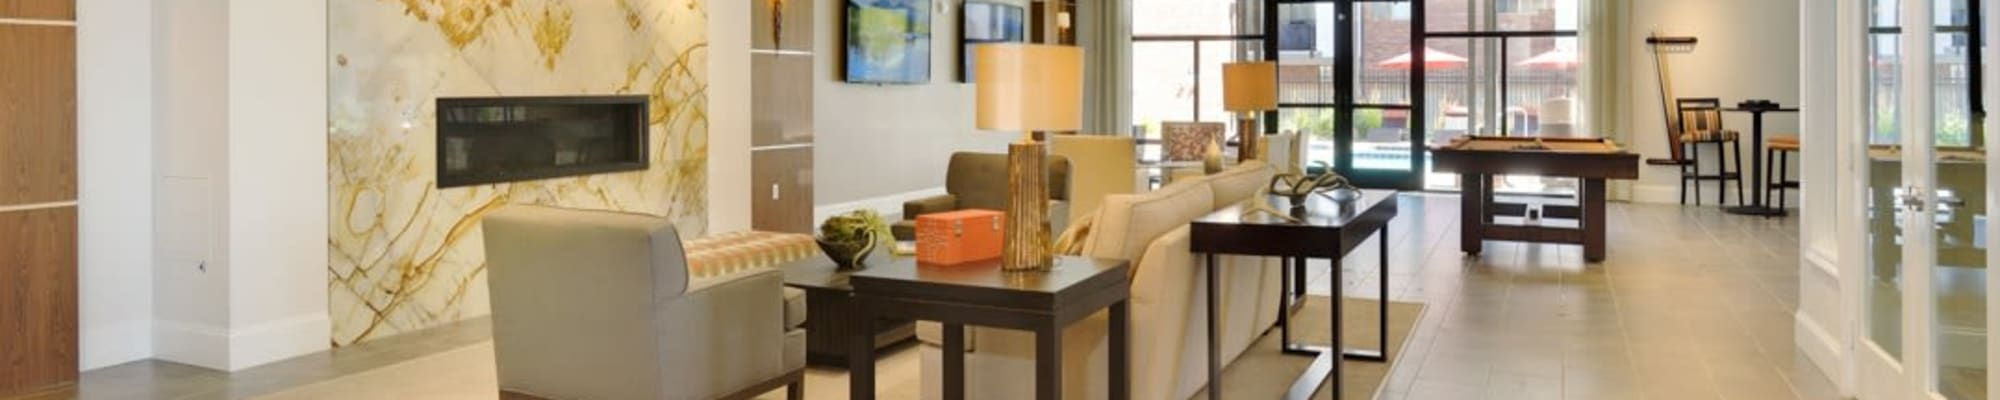 Login for users of our website at The Parc at Greenwood Village in Greenwood Village, Colorado